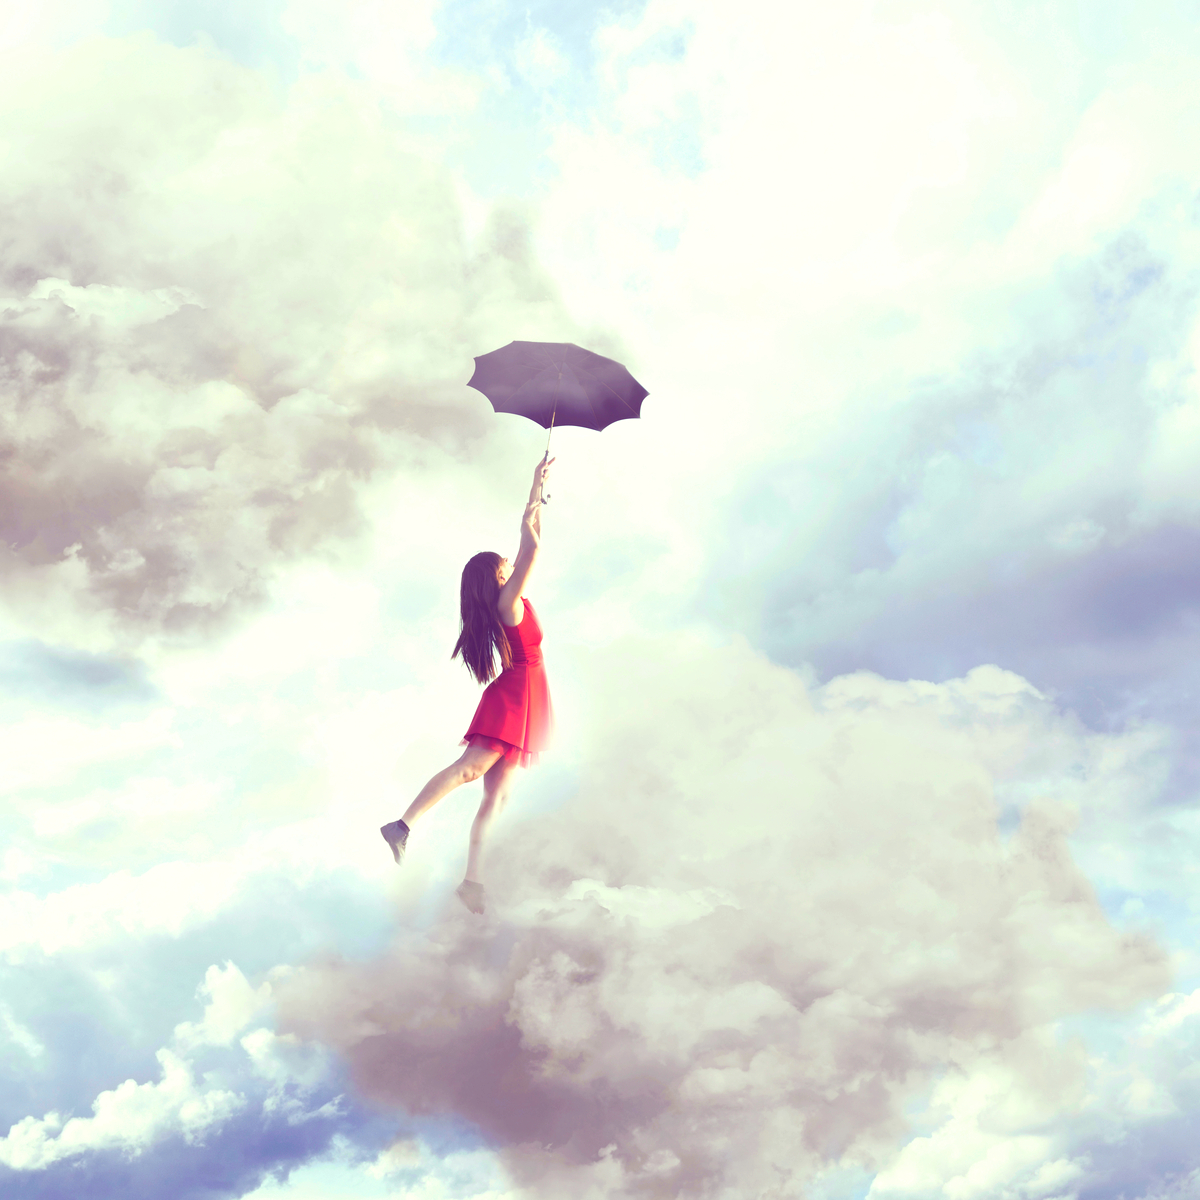 Whimsical image of a human lifting off into the clouds with an open umbrella